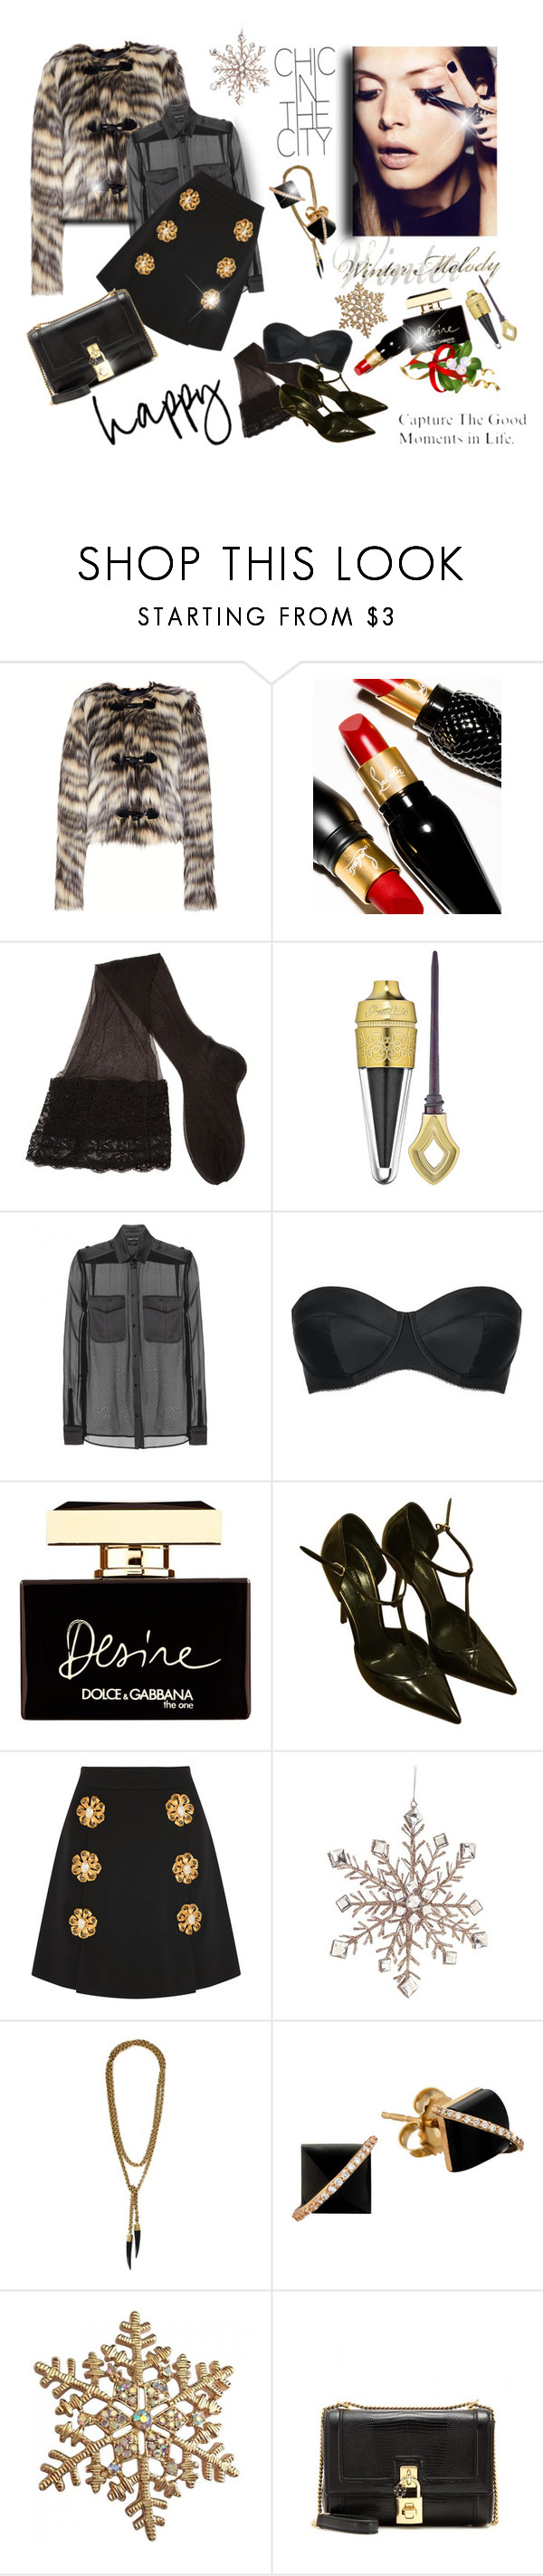 """MADELINE"" by livelfashion ❤ liked on Polyvore featuring Lanvin, Christian Louboutin, SERIE NOIRE, CERVIN, Guerlain, Tom Ford, L'Agent By Agent Provocateur, Dolce&Gabbana, Melrose International and SOKO"